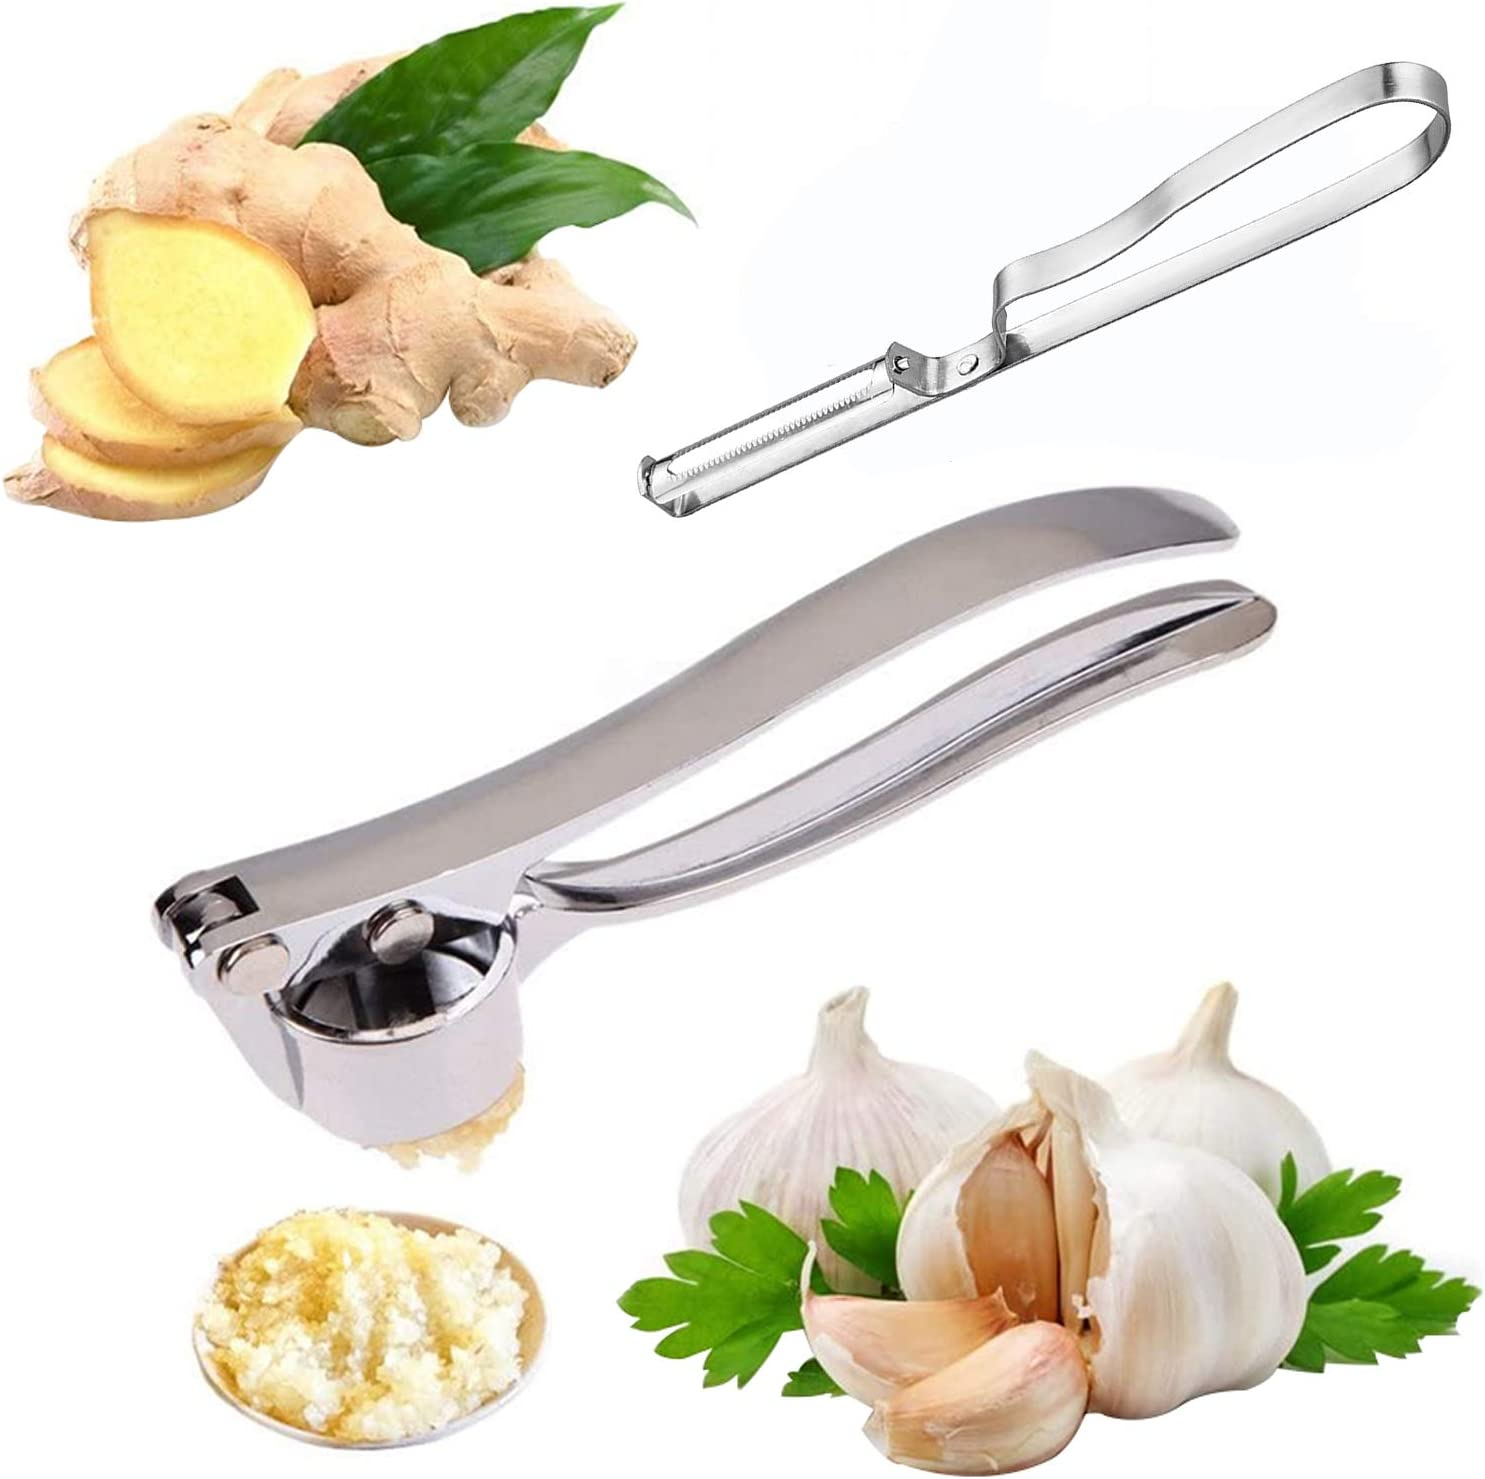 Garlic Press With Vegetable Peeler, Stainless Steel Garlic Press Tool, Manual Masher for Potatoes, Fruits, Vegetables, Yams, Squash, Baby Food and More,Easy Squeeze, Rust Proof, Dishwasher Safe